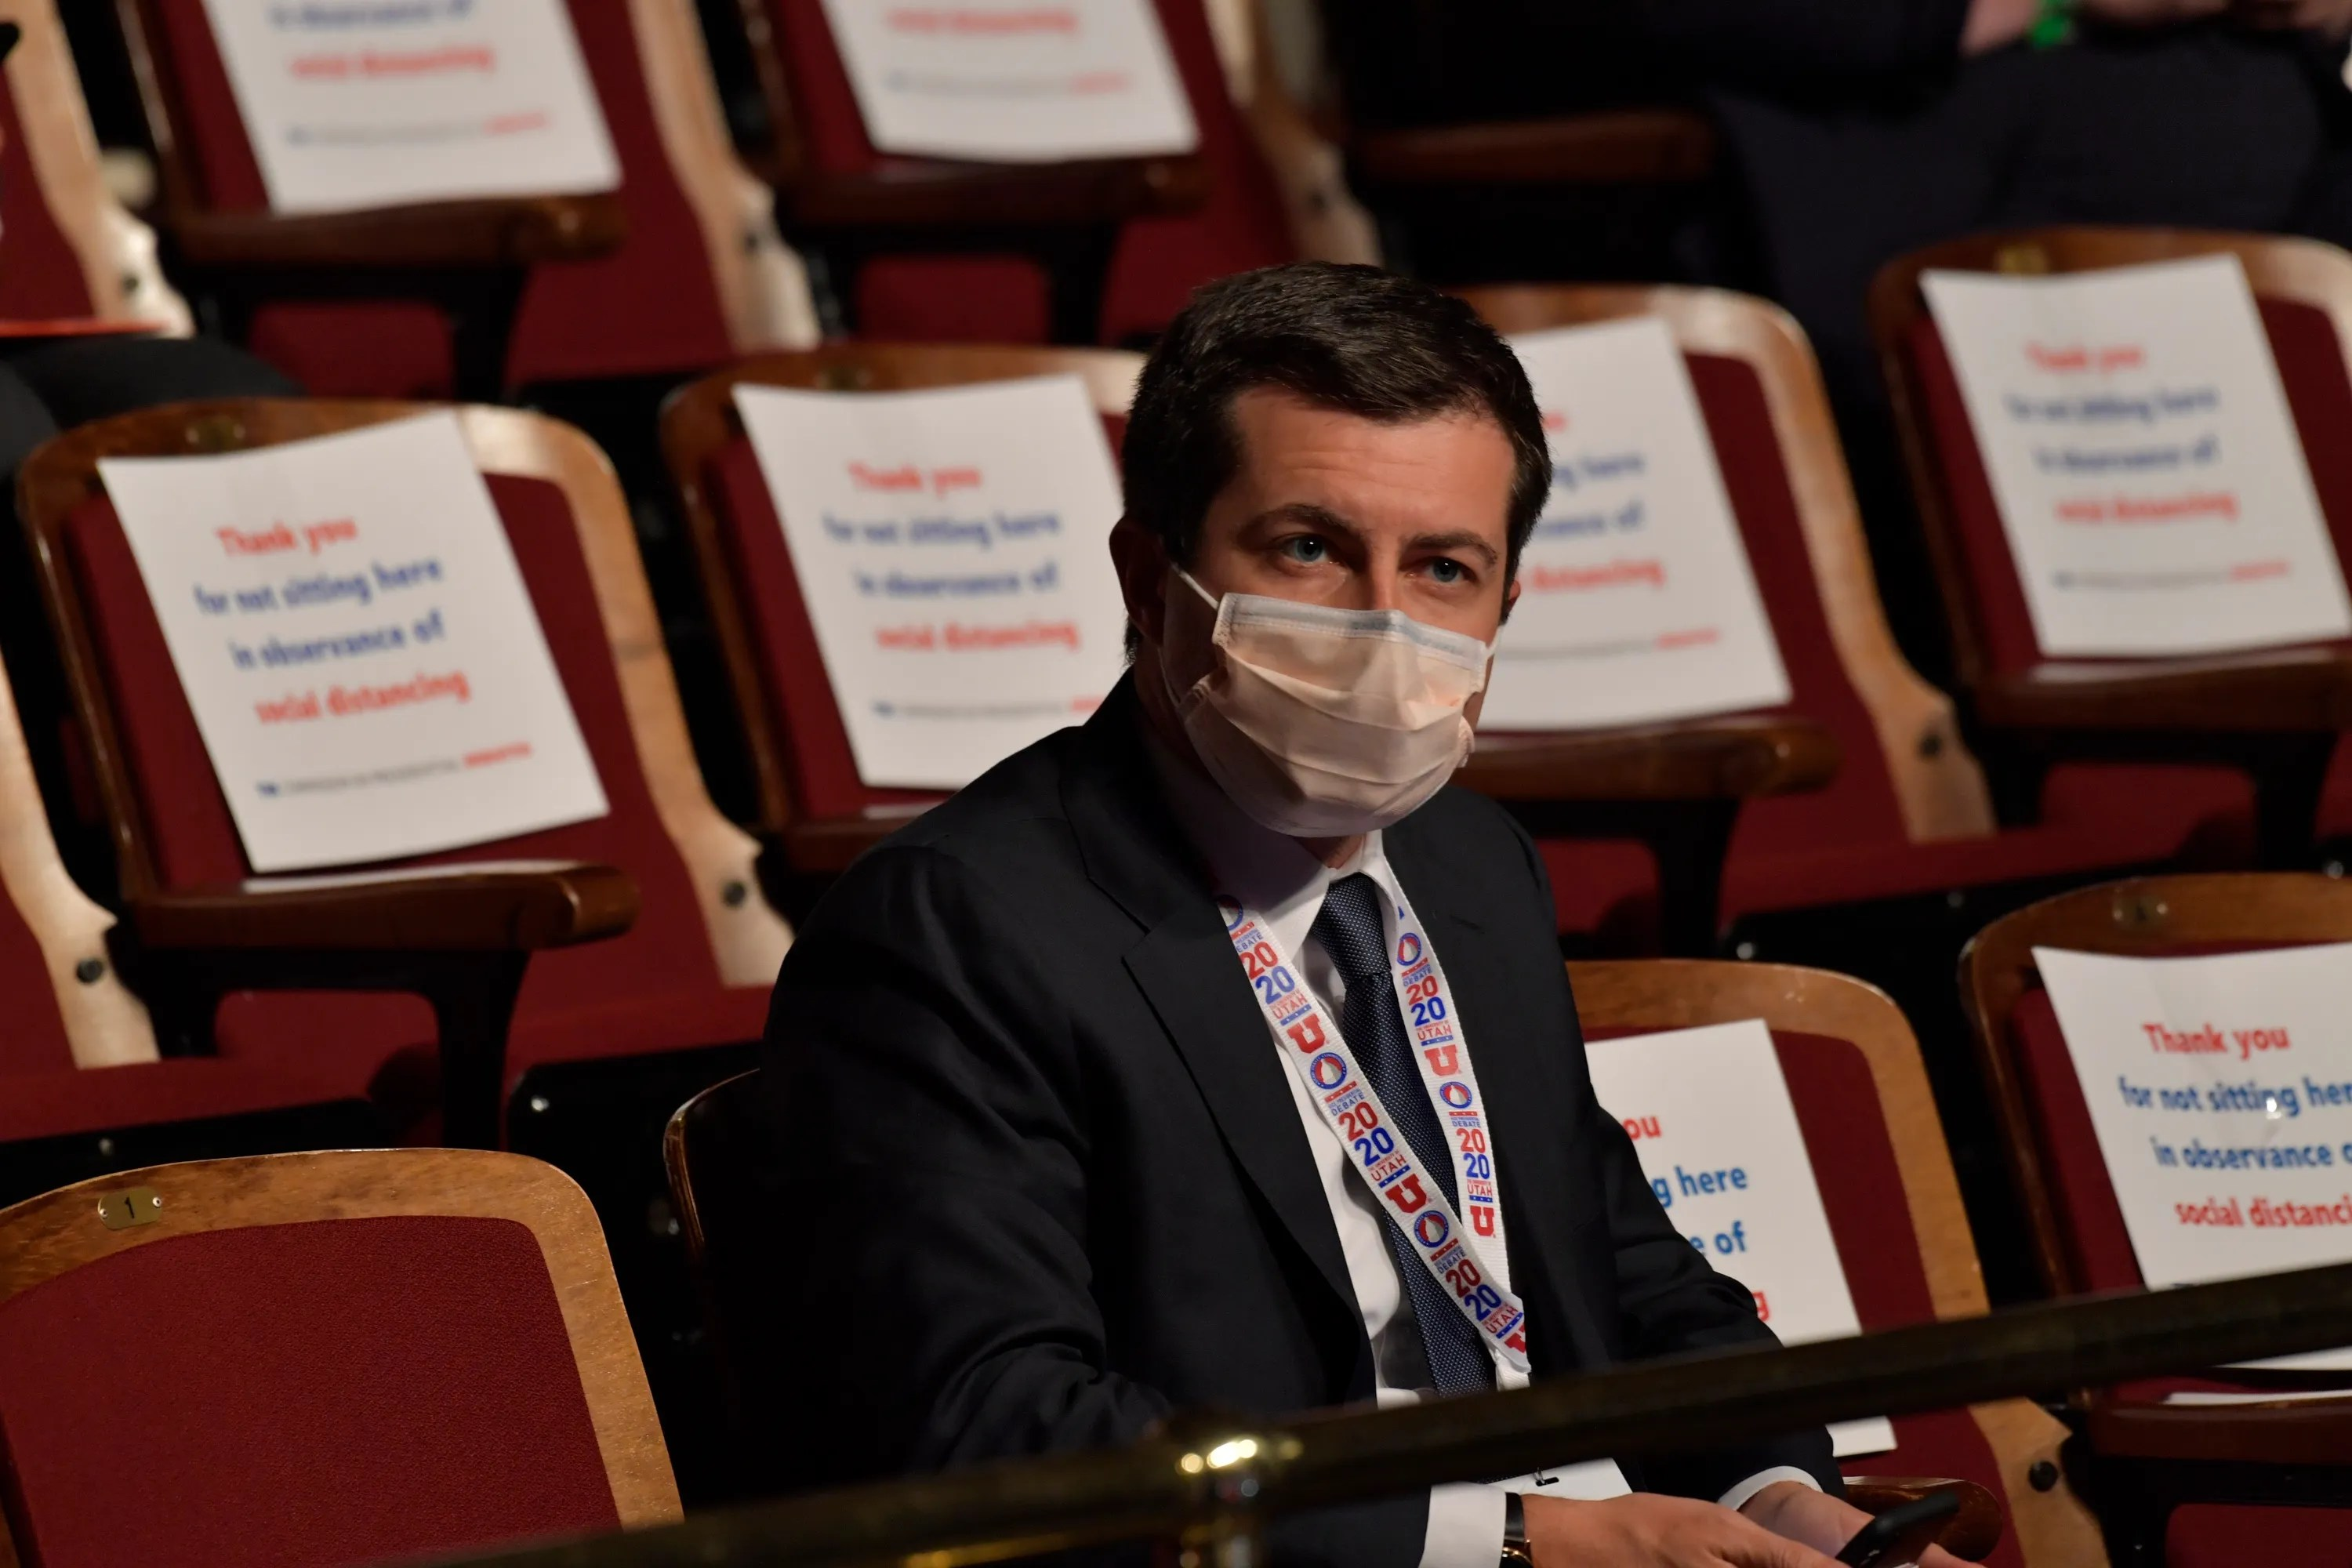 Pete Buttigieg waits for the start of the Vice Presidential debate.